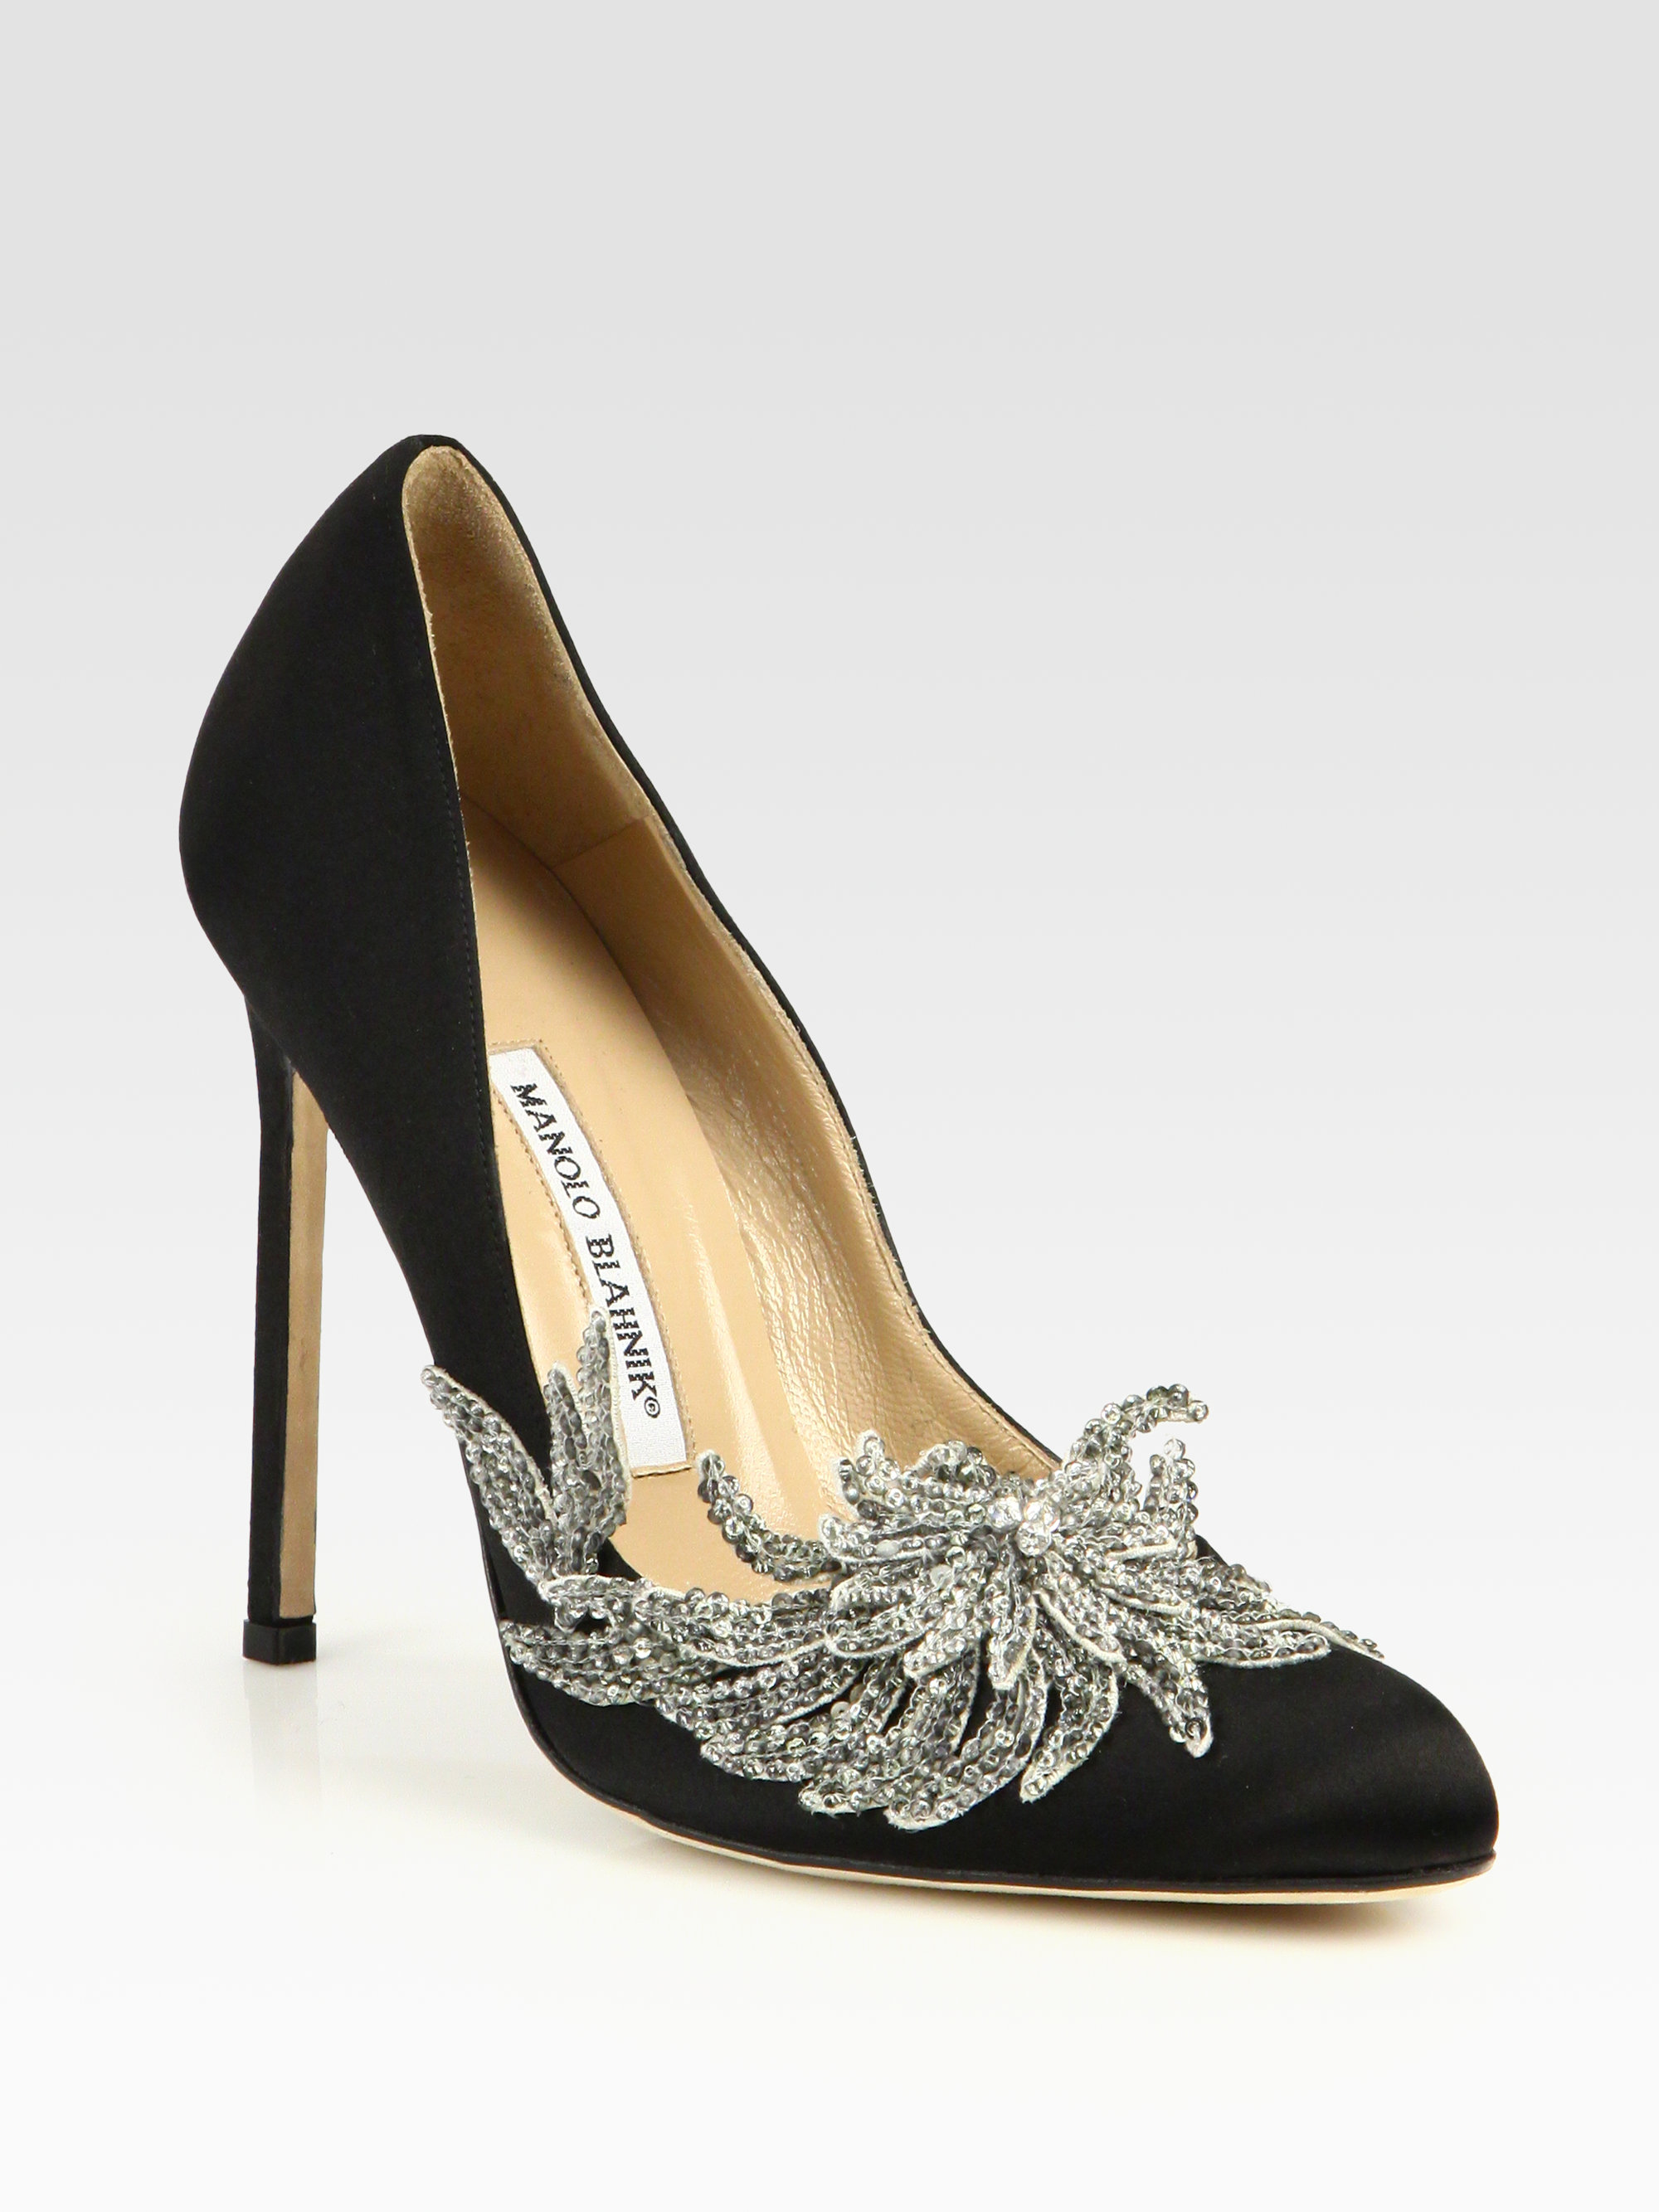 manolo blahnik shoes in the uk